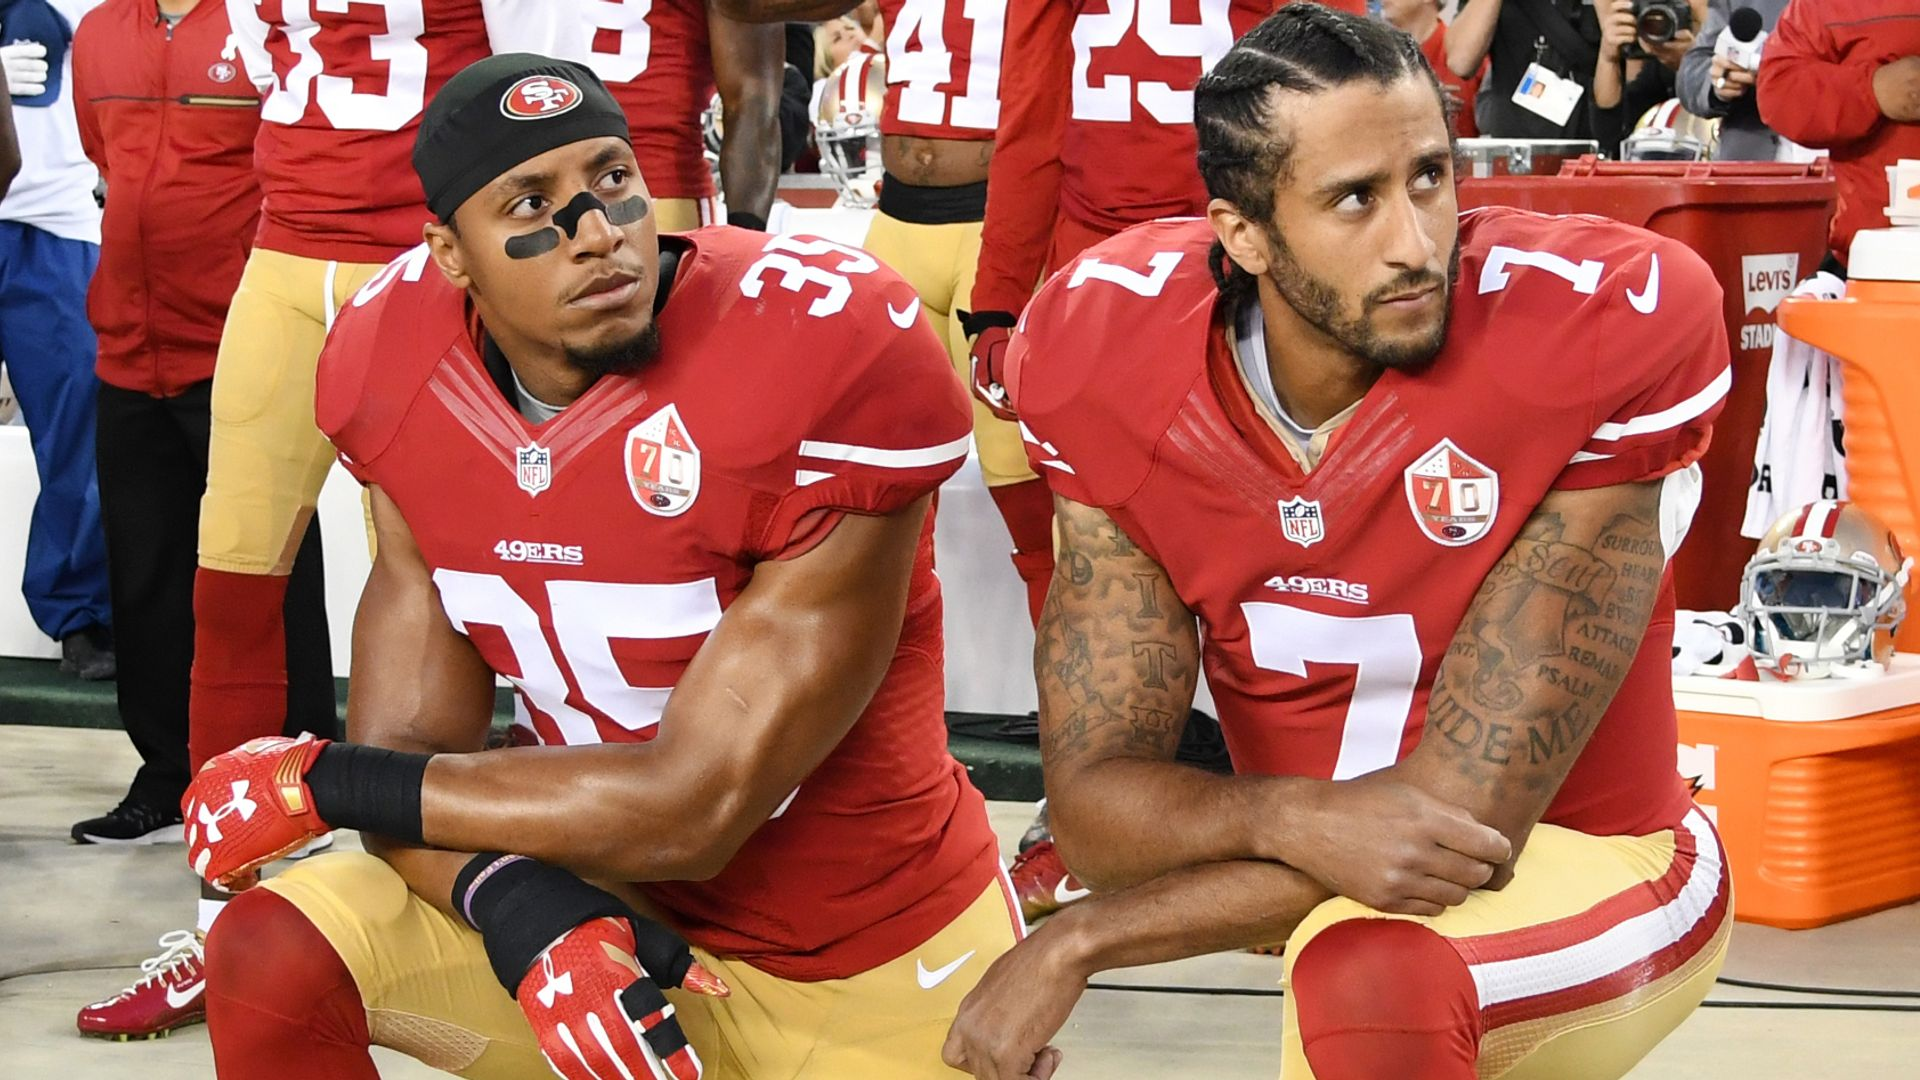 NFL: We were wrong not to support player protests